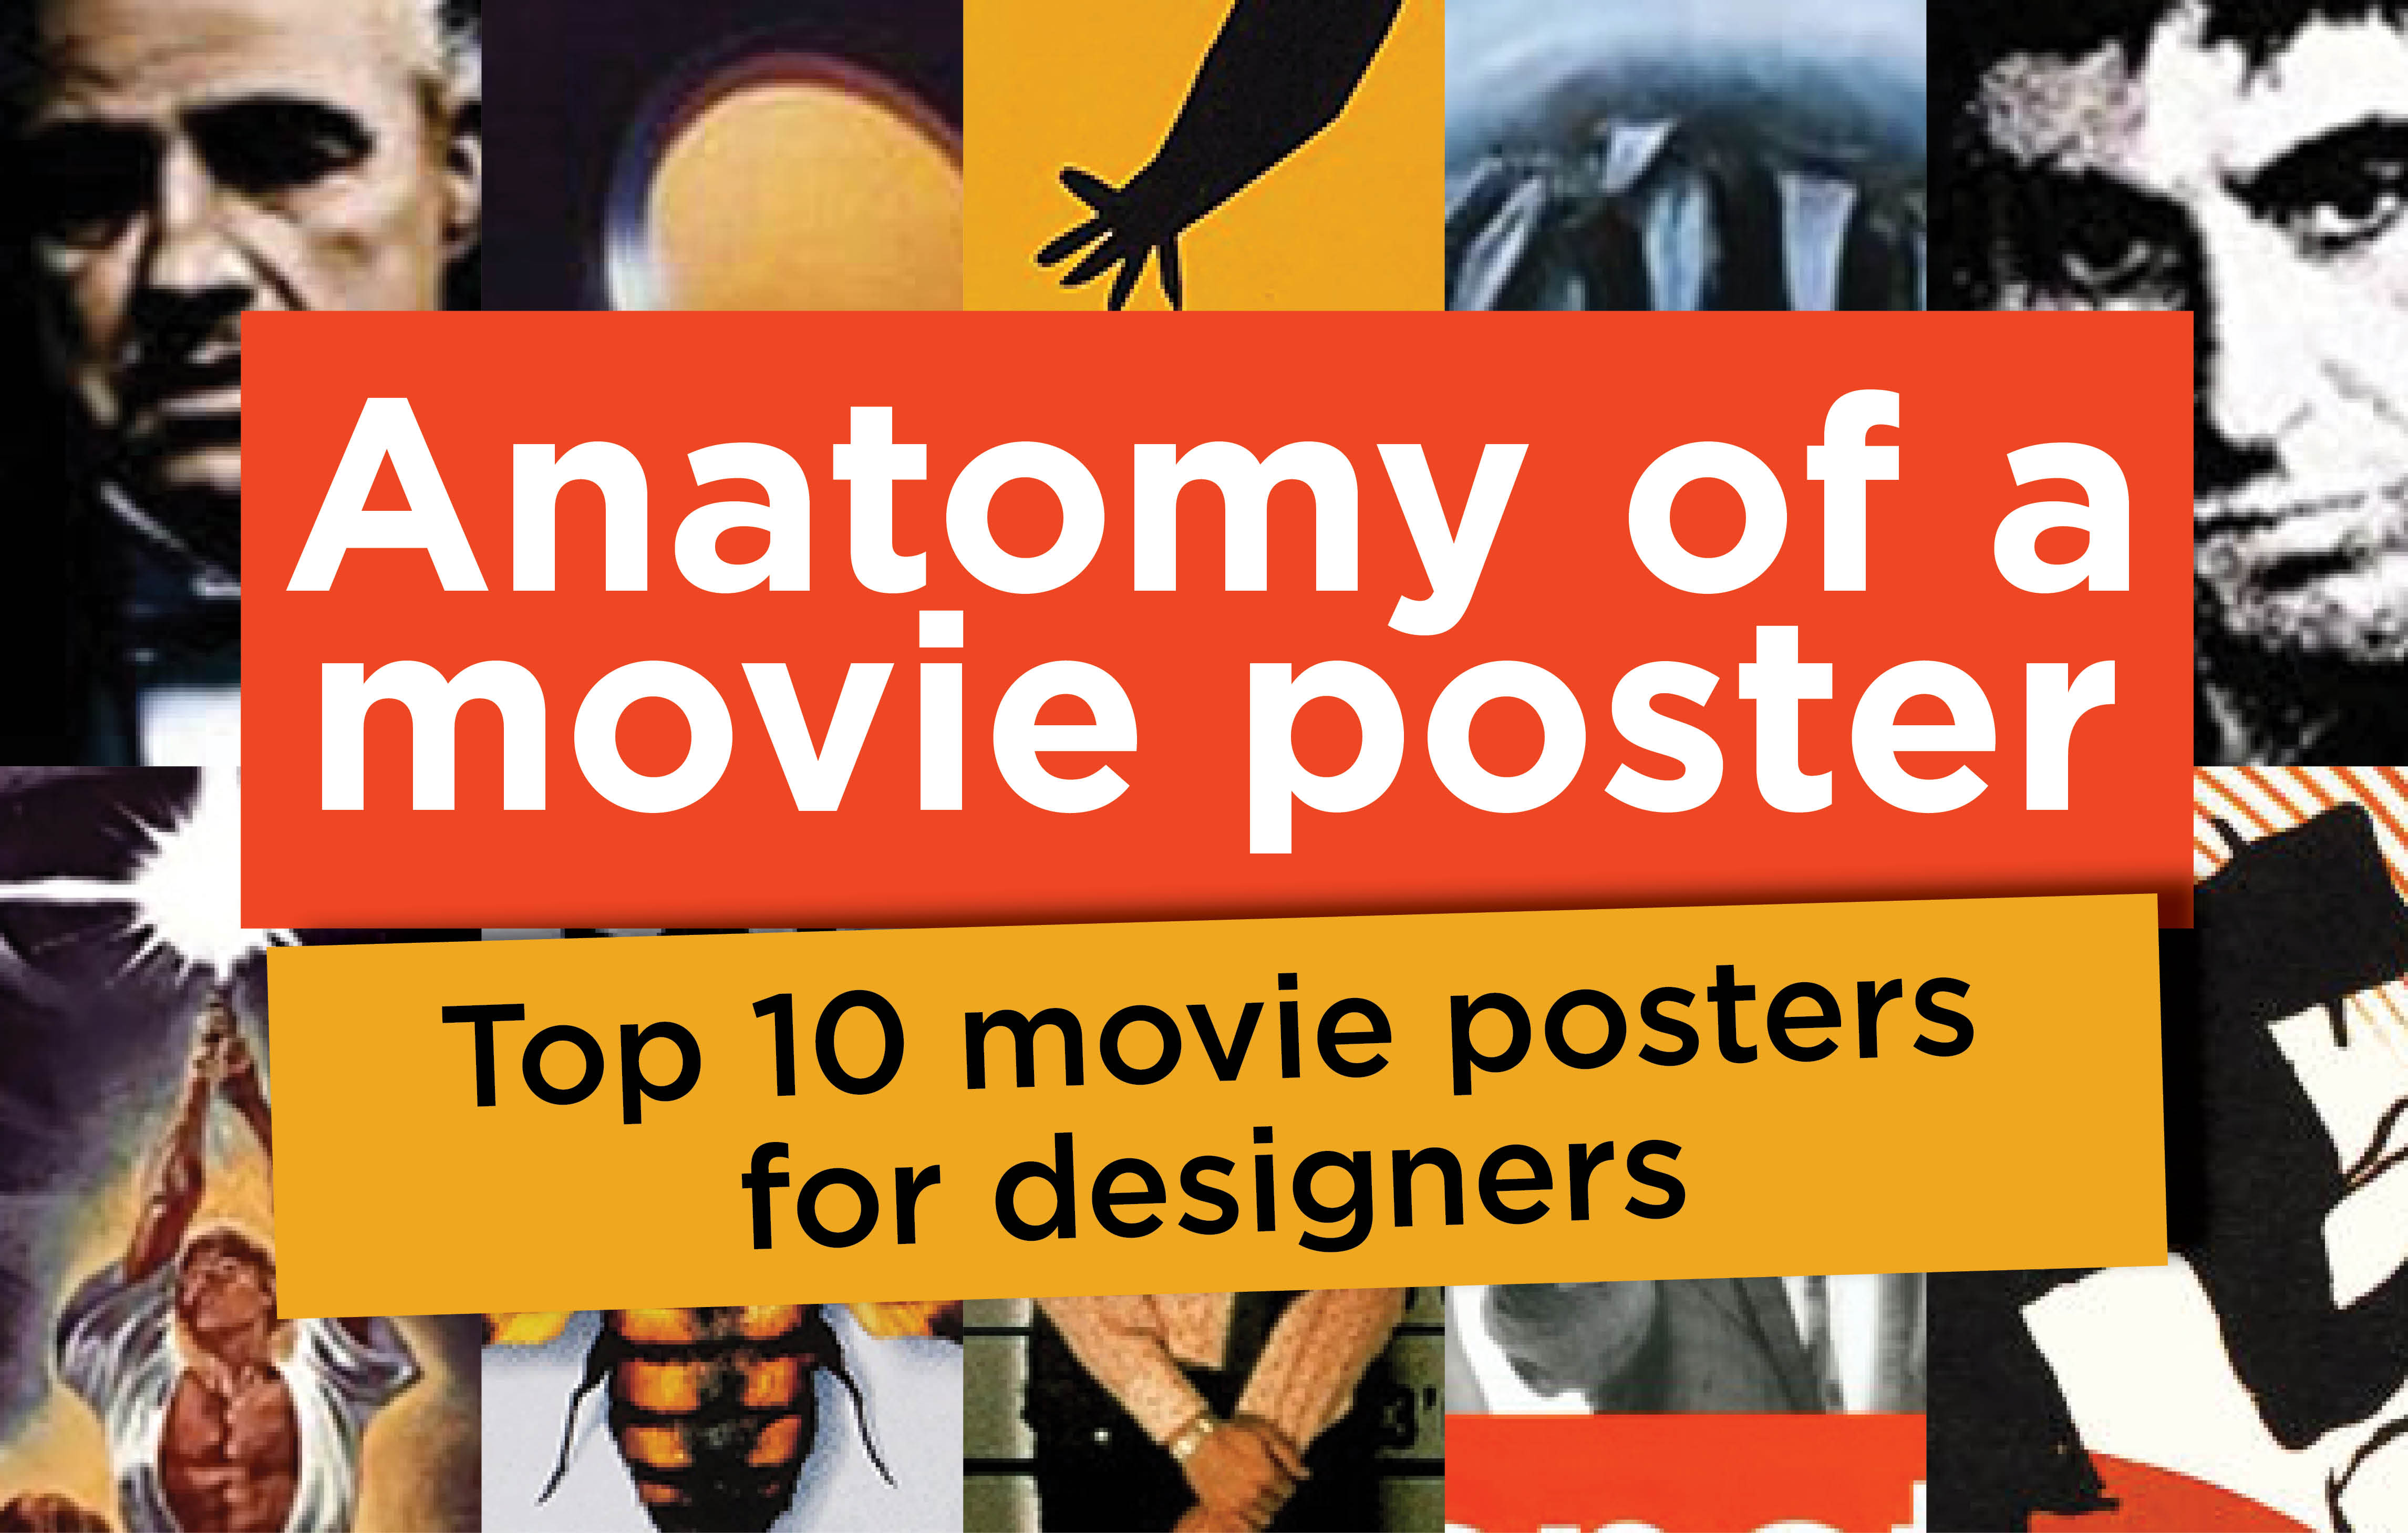 Anatomy Of A Movie Poster Top 10 Movie Posters For Designers